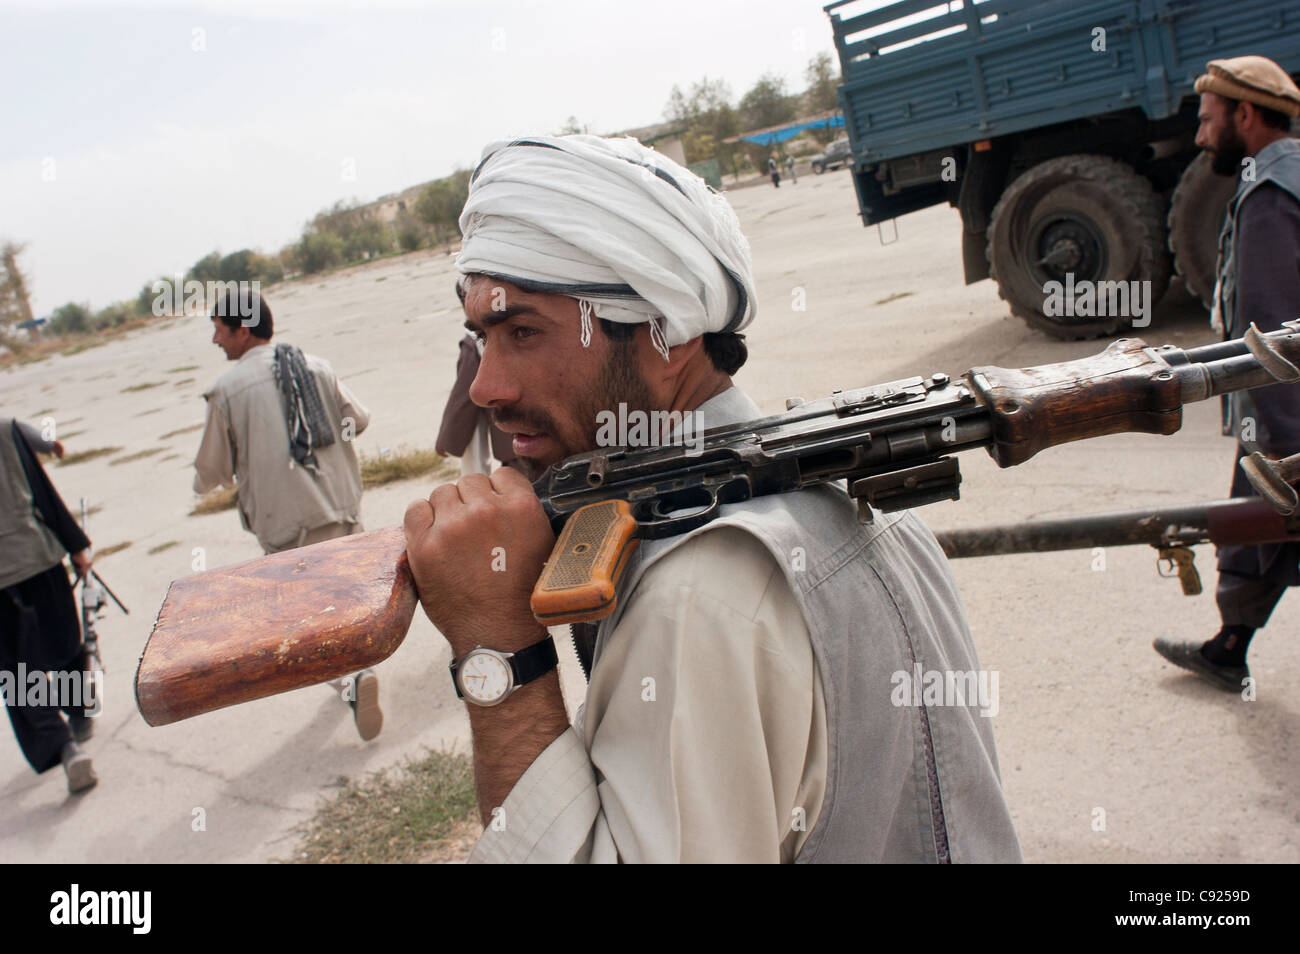 Former militia fighters arrive at an army base, as part of a UN DDR program in Kabul, Afghanistan Stock Photo